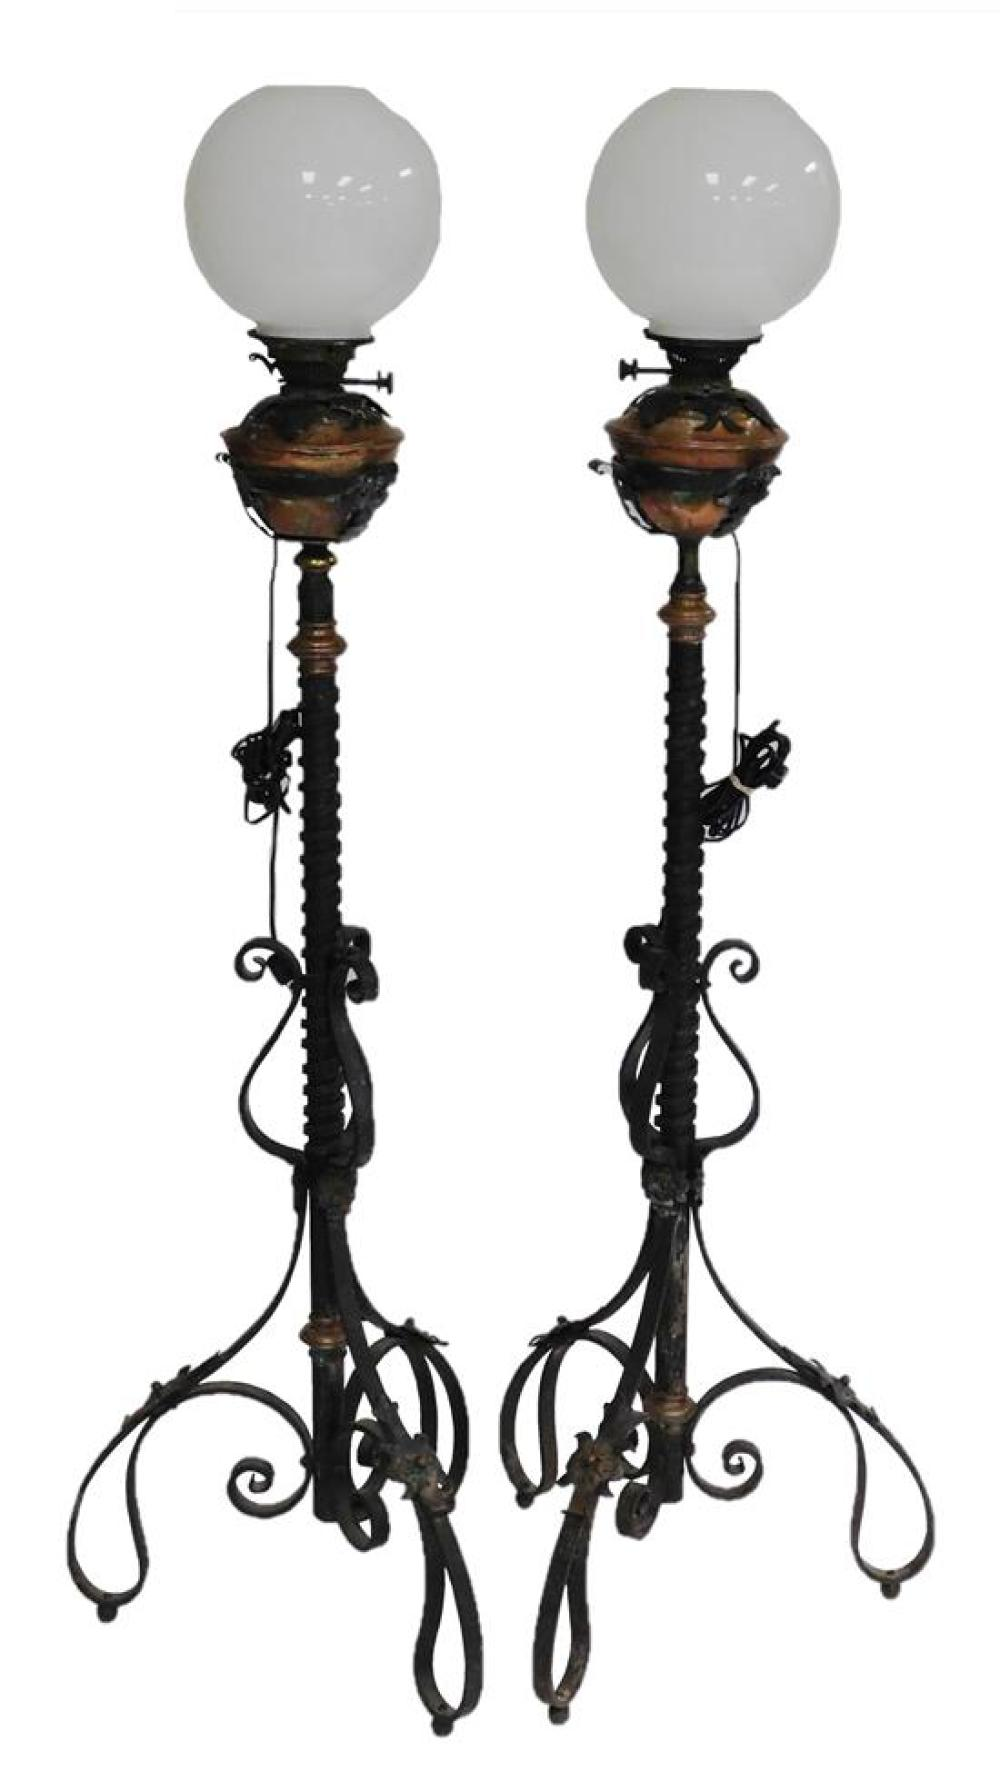 Two French standing fluid lamps, 19th C., wrought iron, copper, etc., electrified, copper font held in place by leaf form supports,...